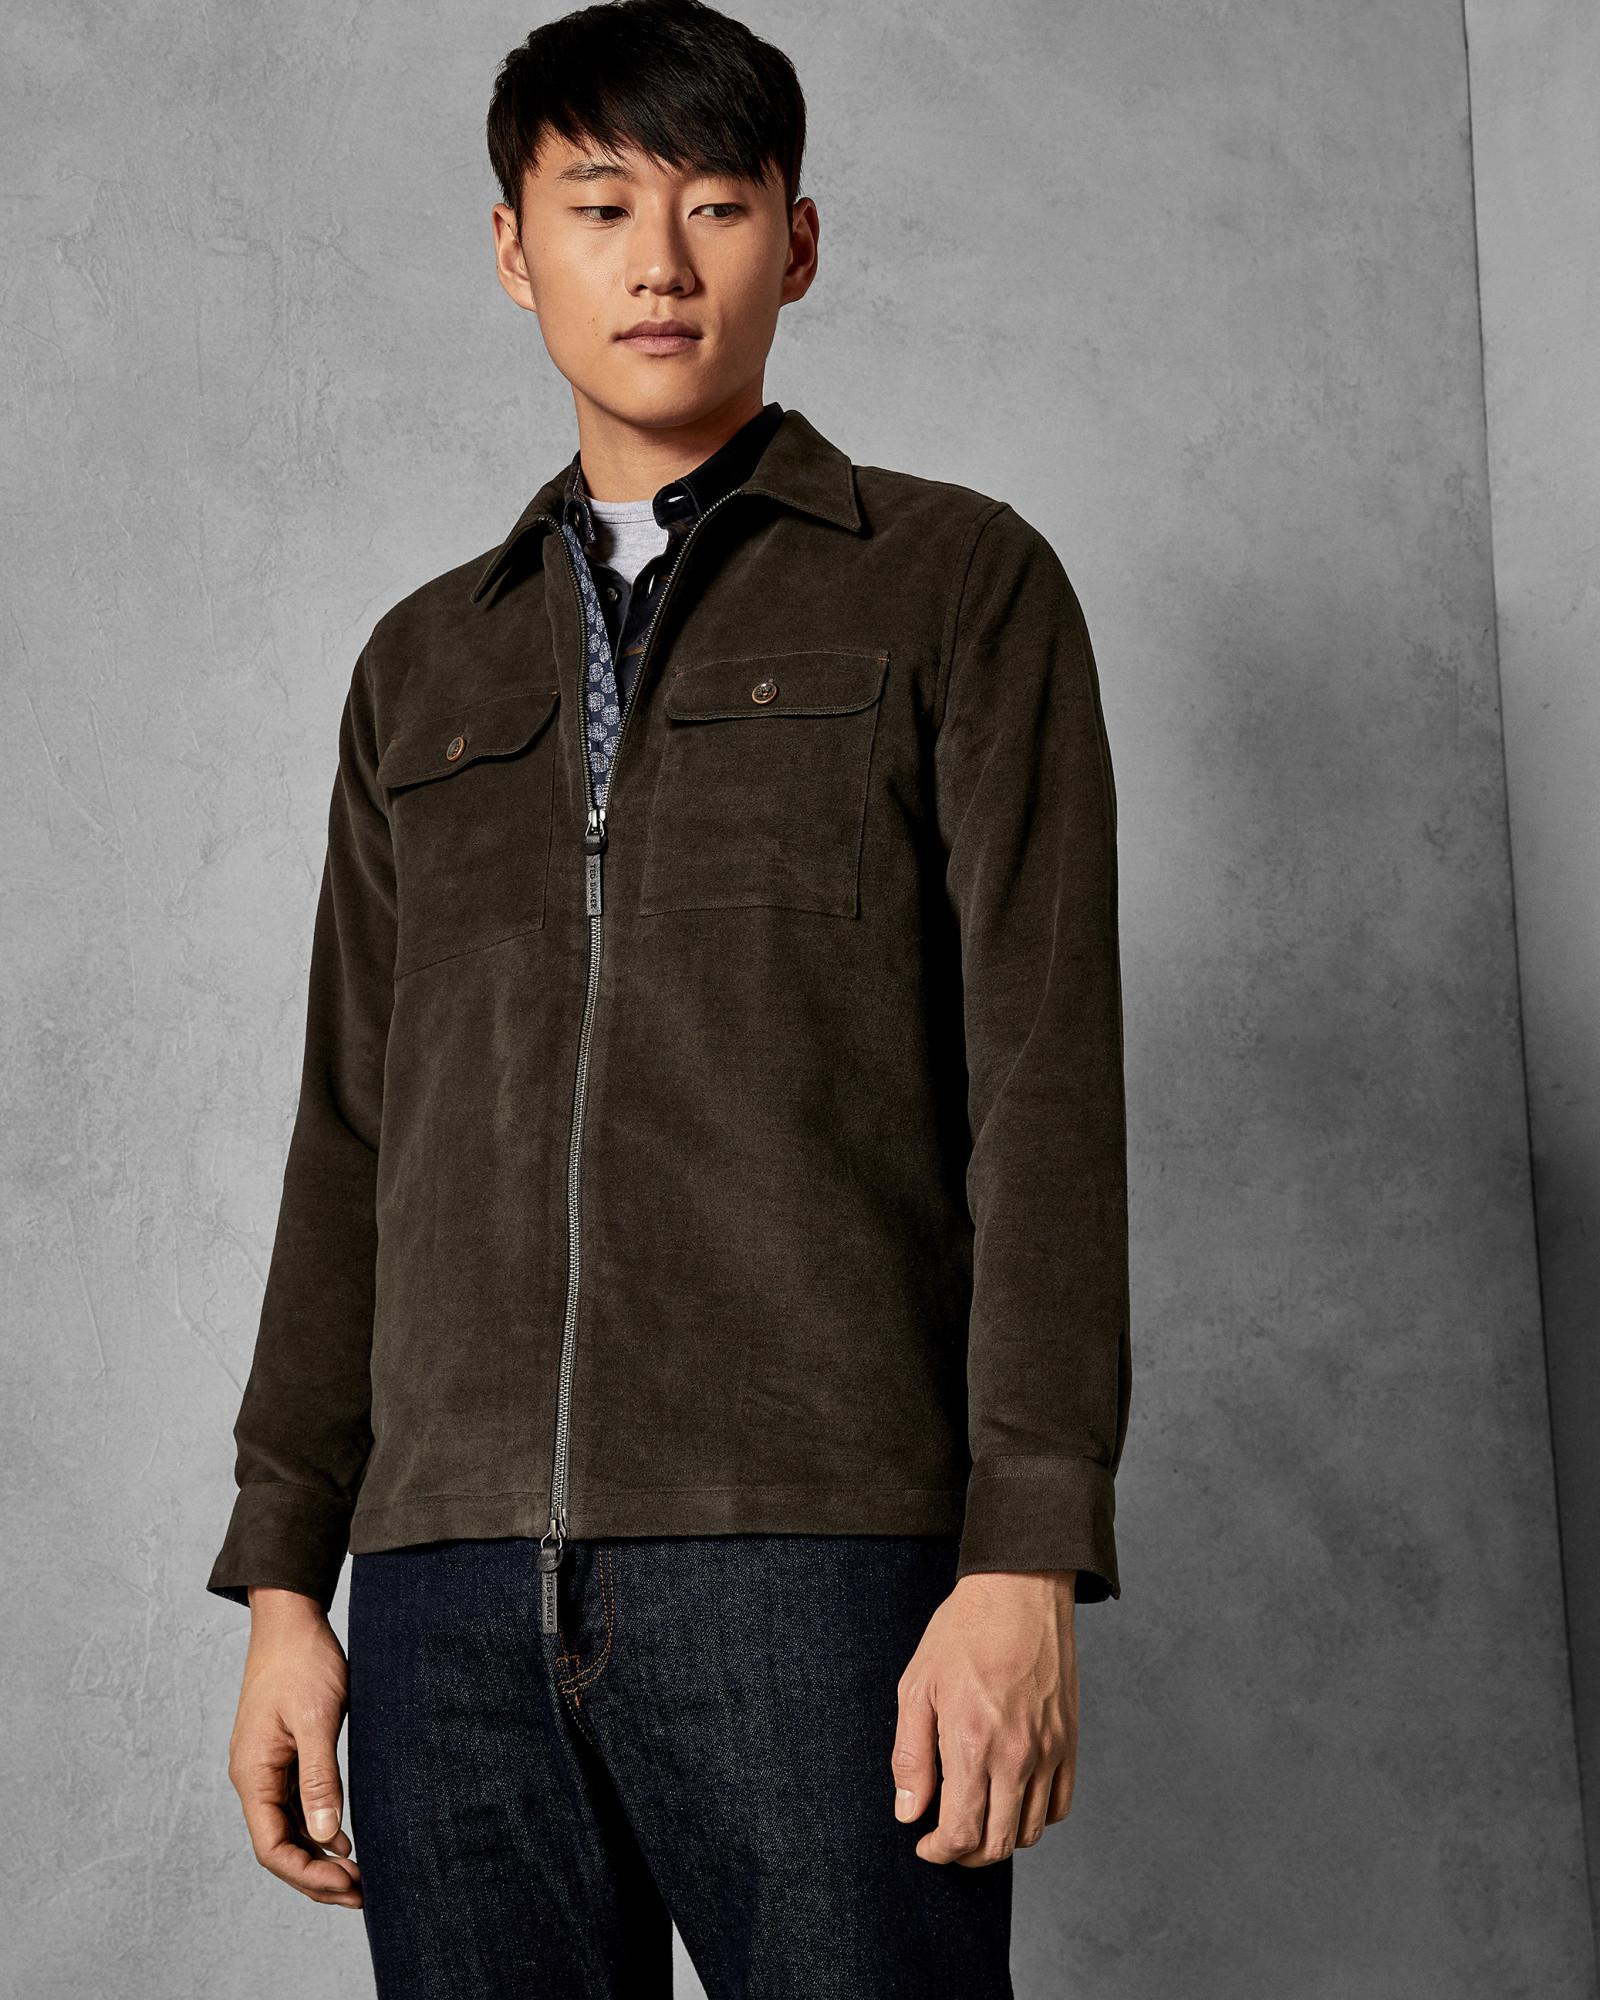 28407b8bd4ad13 Ted Baker - Gray Two Pocket Zipped Cotton Shacket for Men - Lyst. View  fullscreen